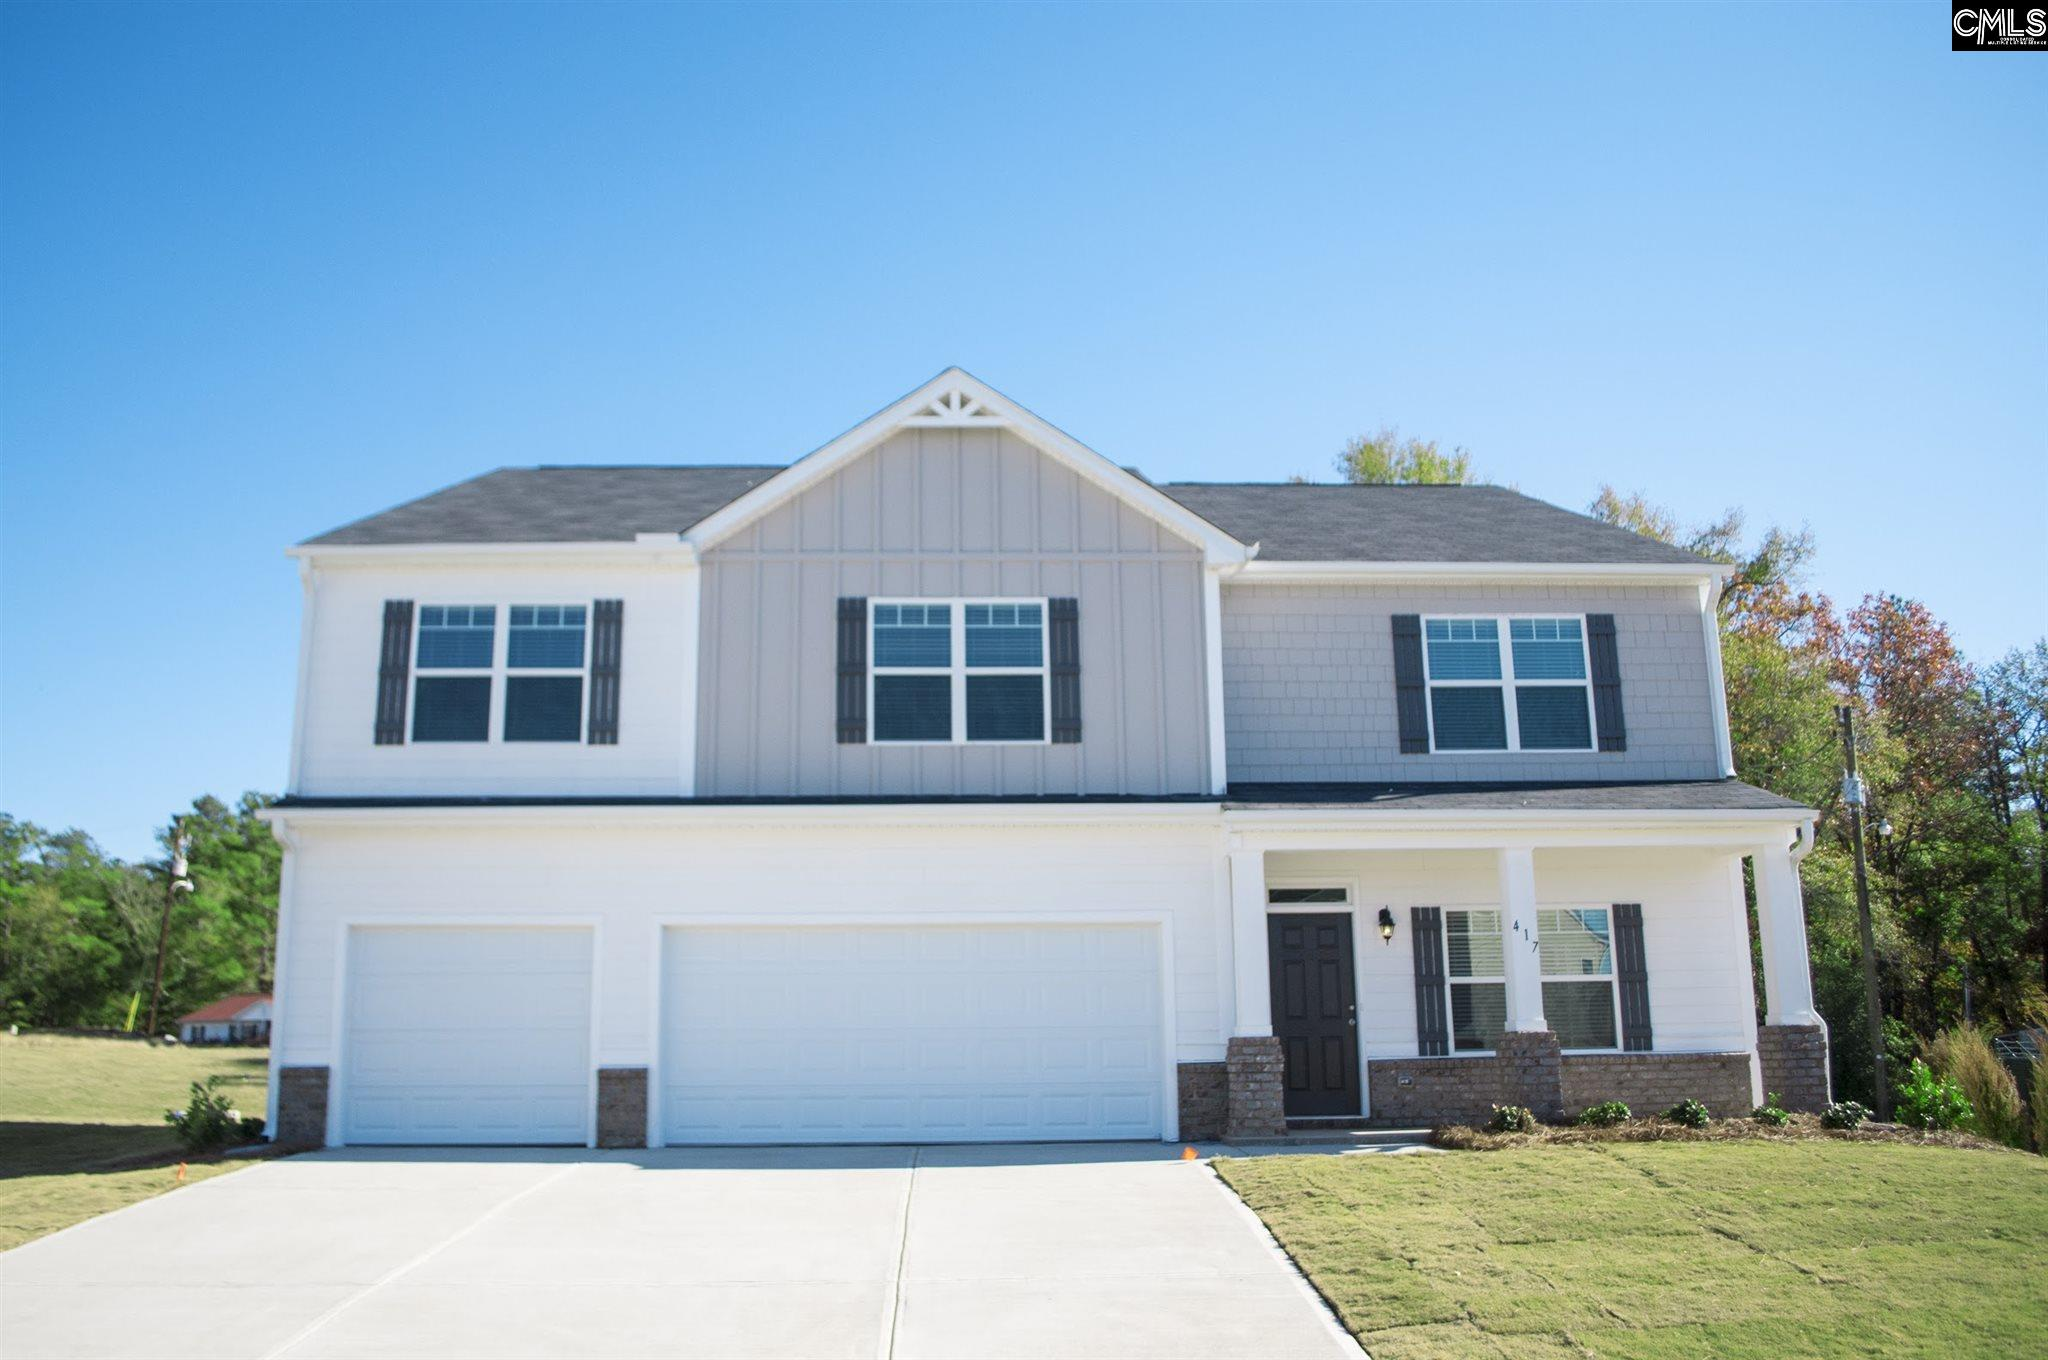 417 Rolling Shoals Lexington, SC 29072